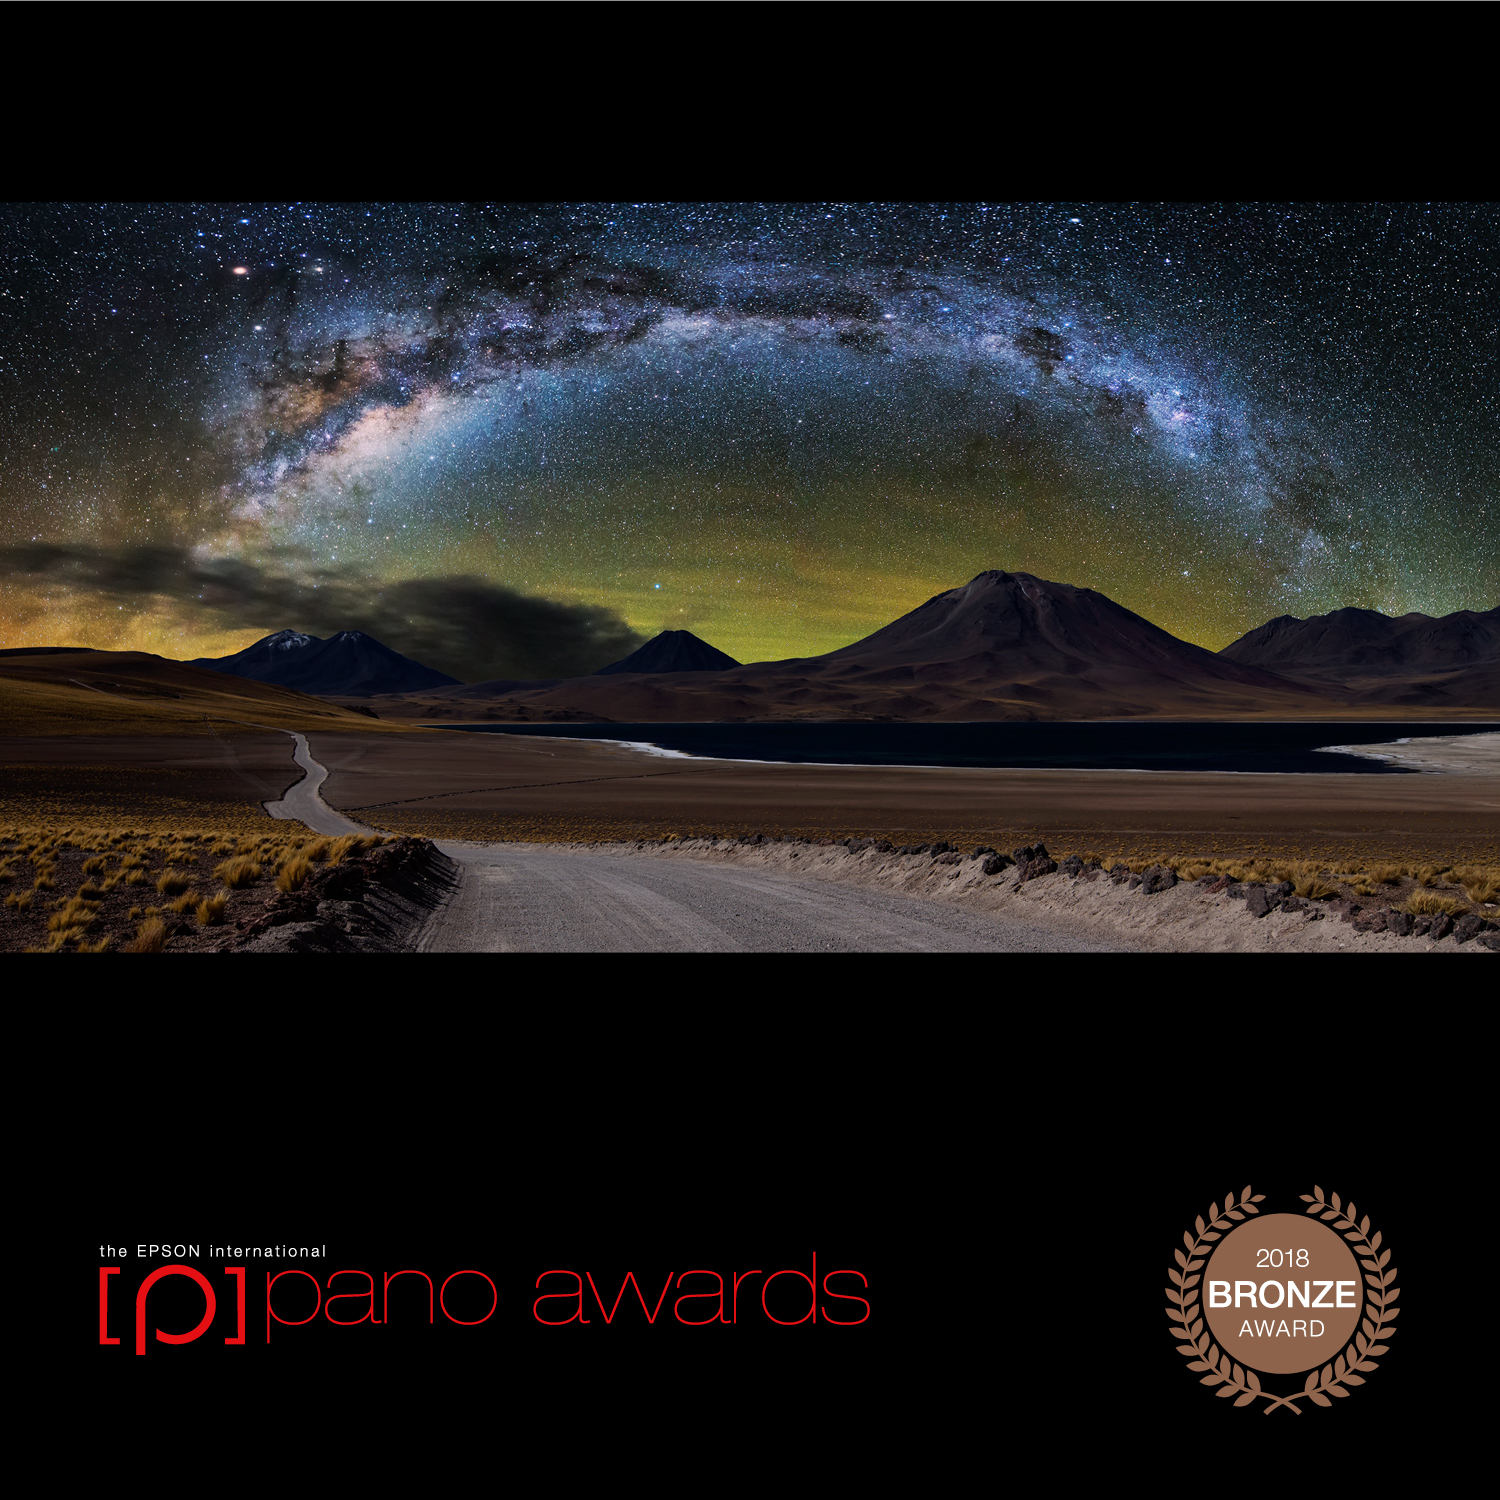 2018-Epson-Pano-Awards-Amateur-Bronze-42